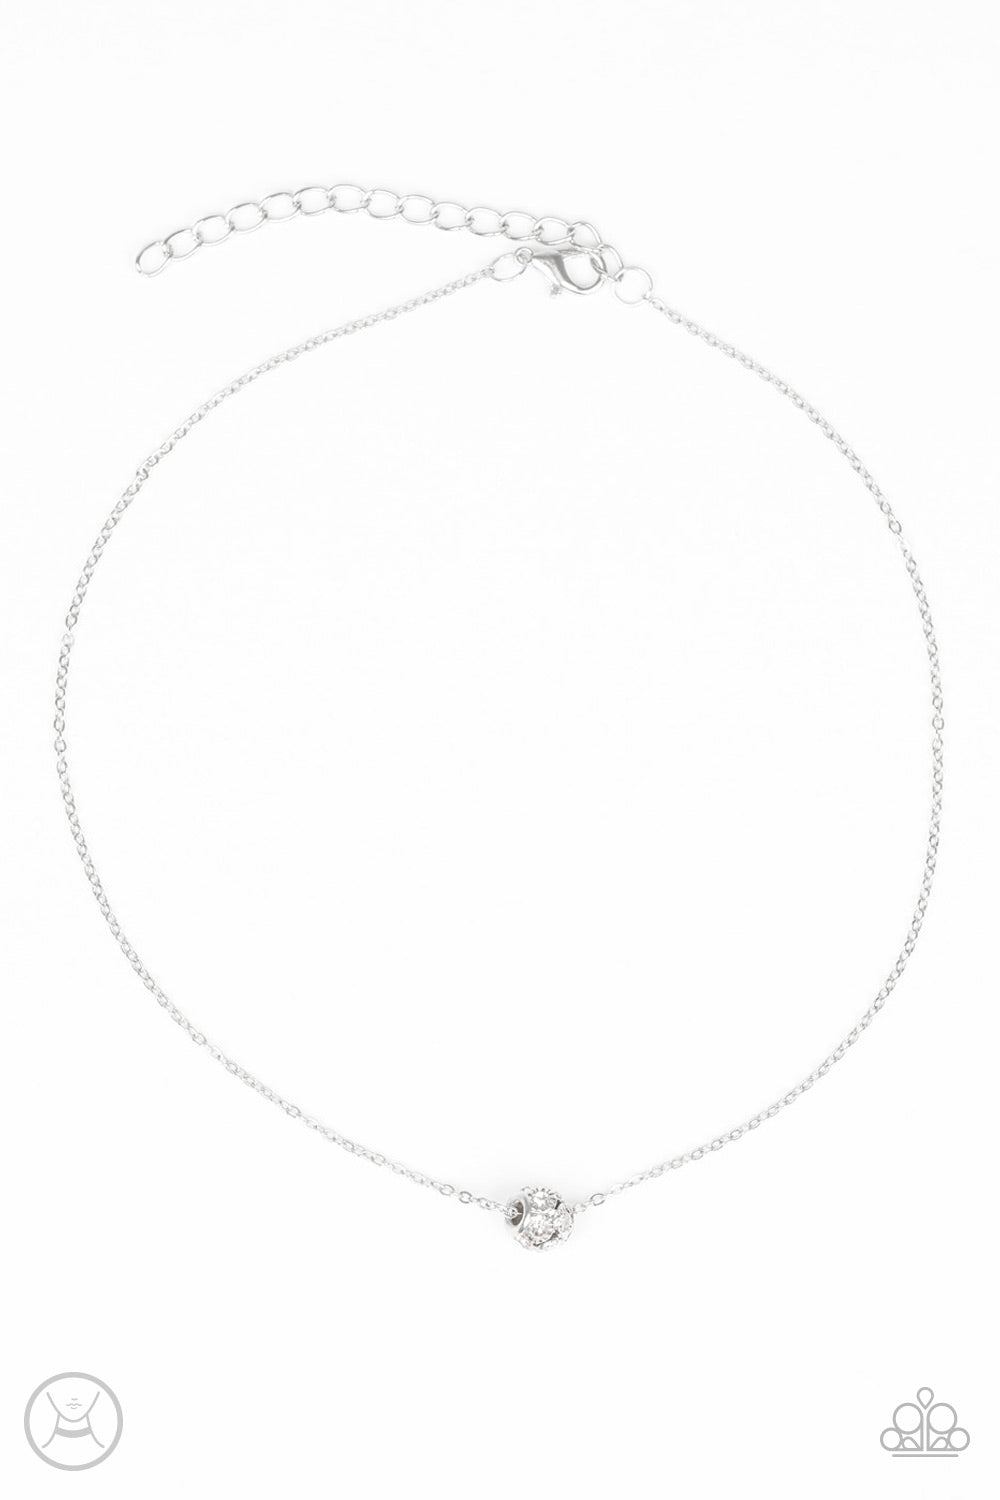 papparazi-necklaceModest Shine - White